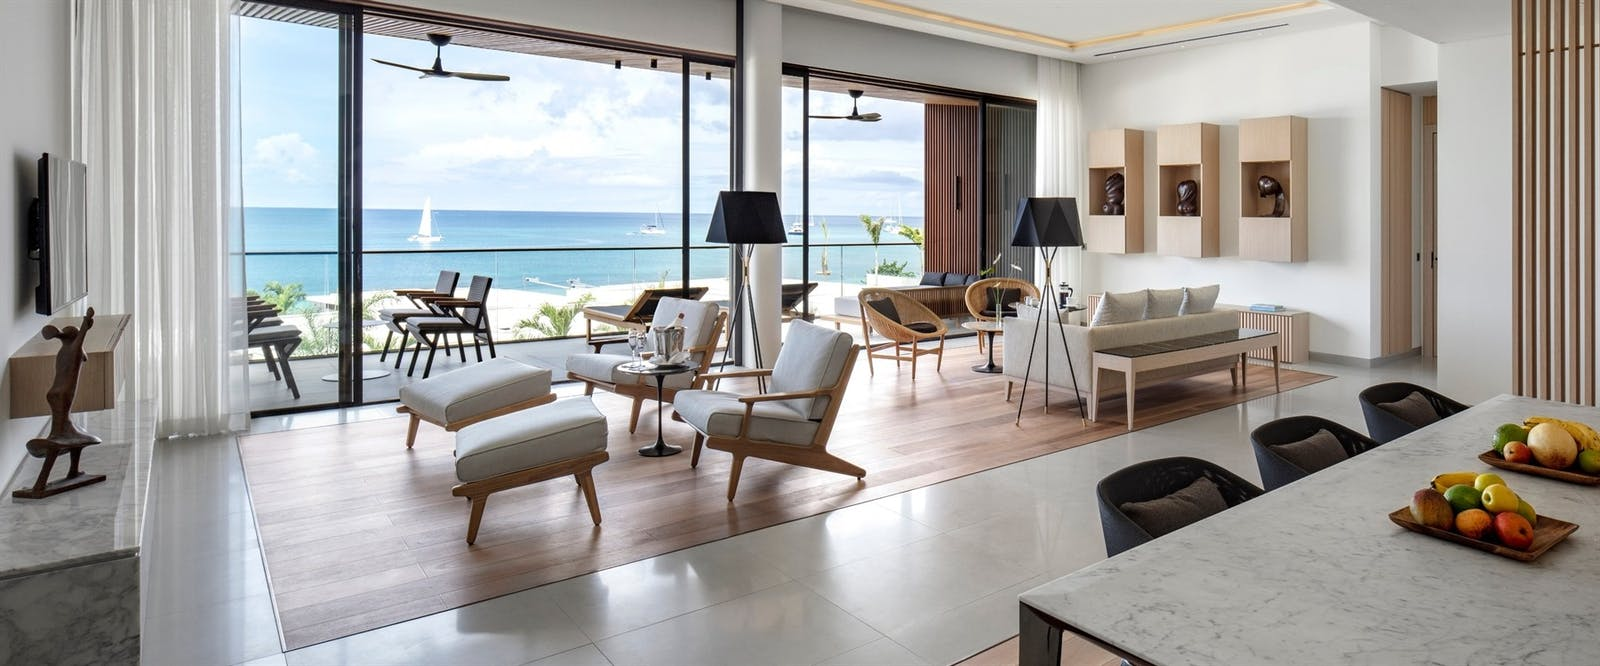 Penthouse Suite at Silversands, Grenada, Caribbean